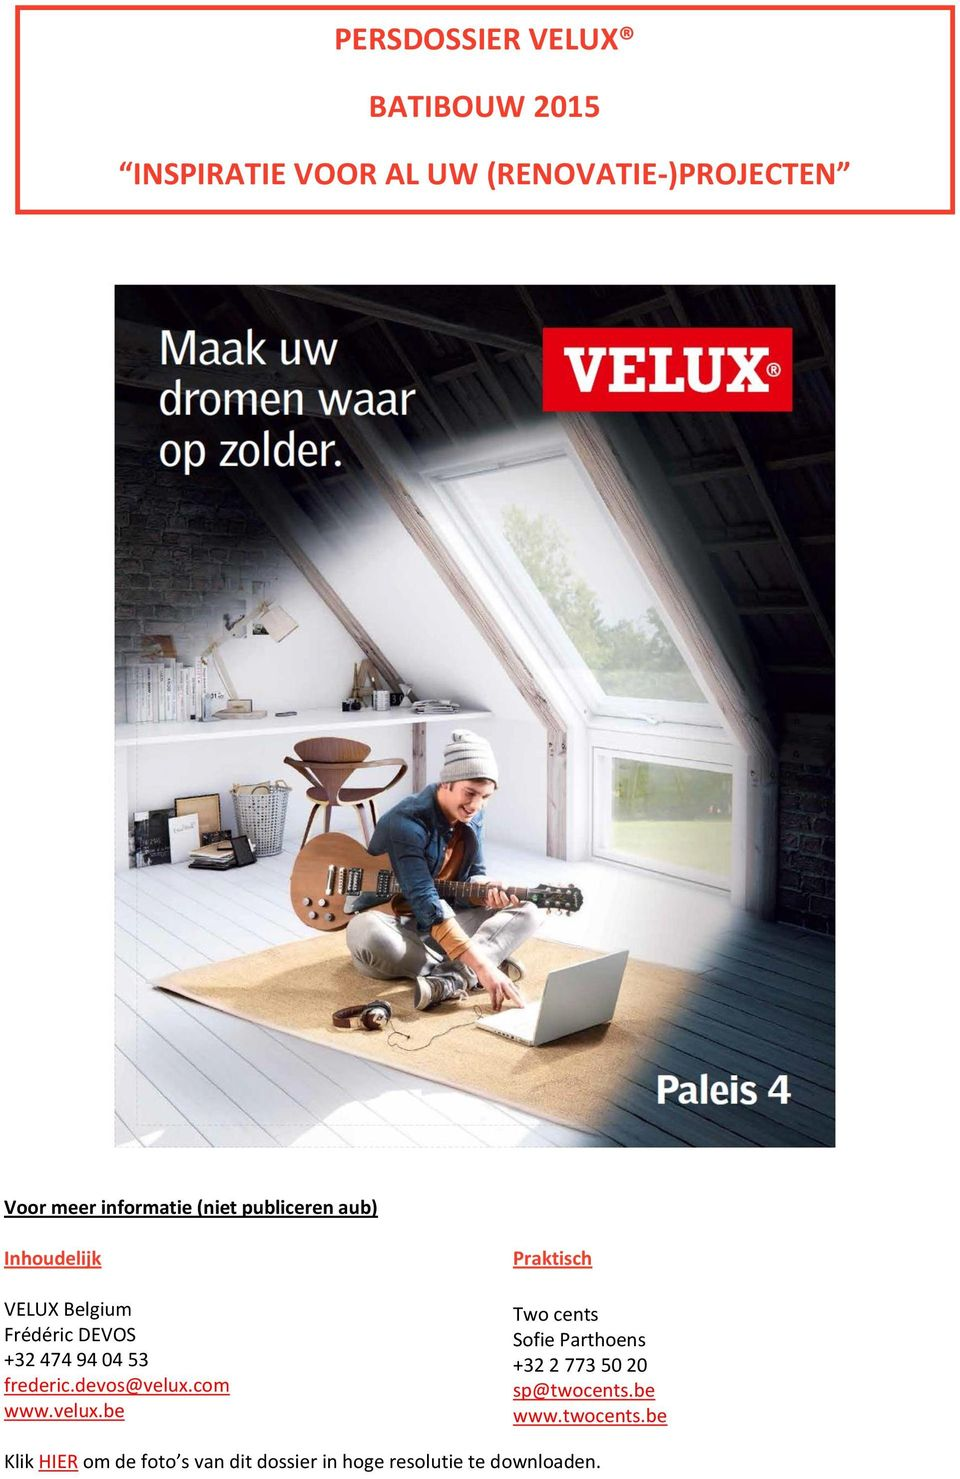 devos@velux.com www.velux.be Praktisch Two cents Sofie Parthoens +32 2 773 50 20 sp@twocents.